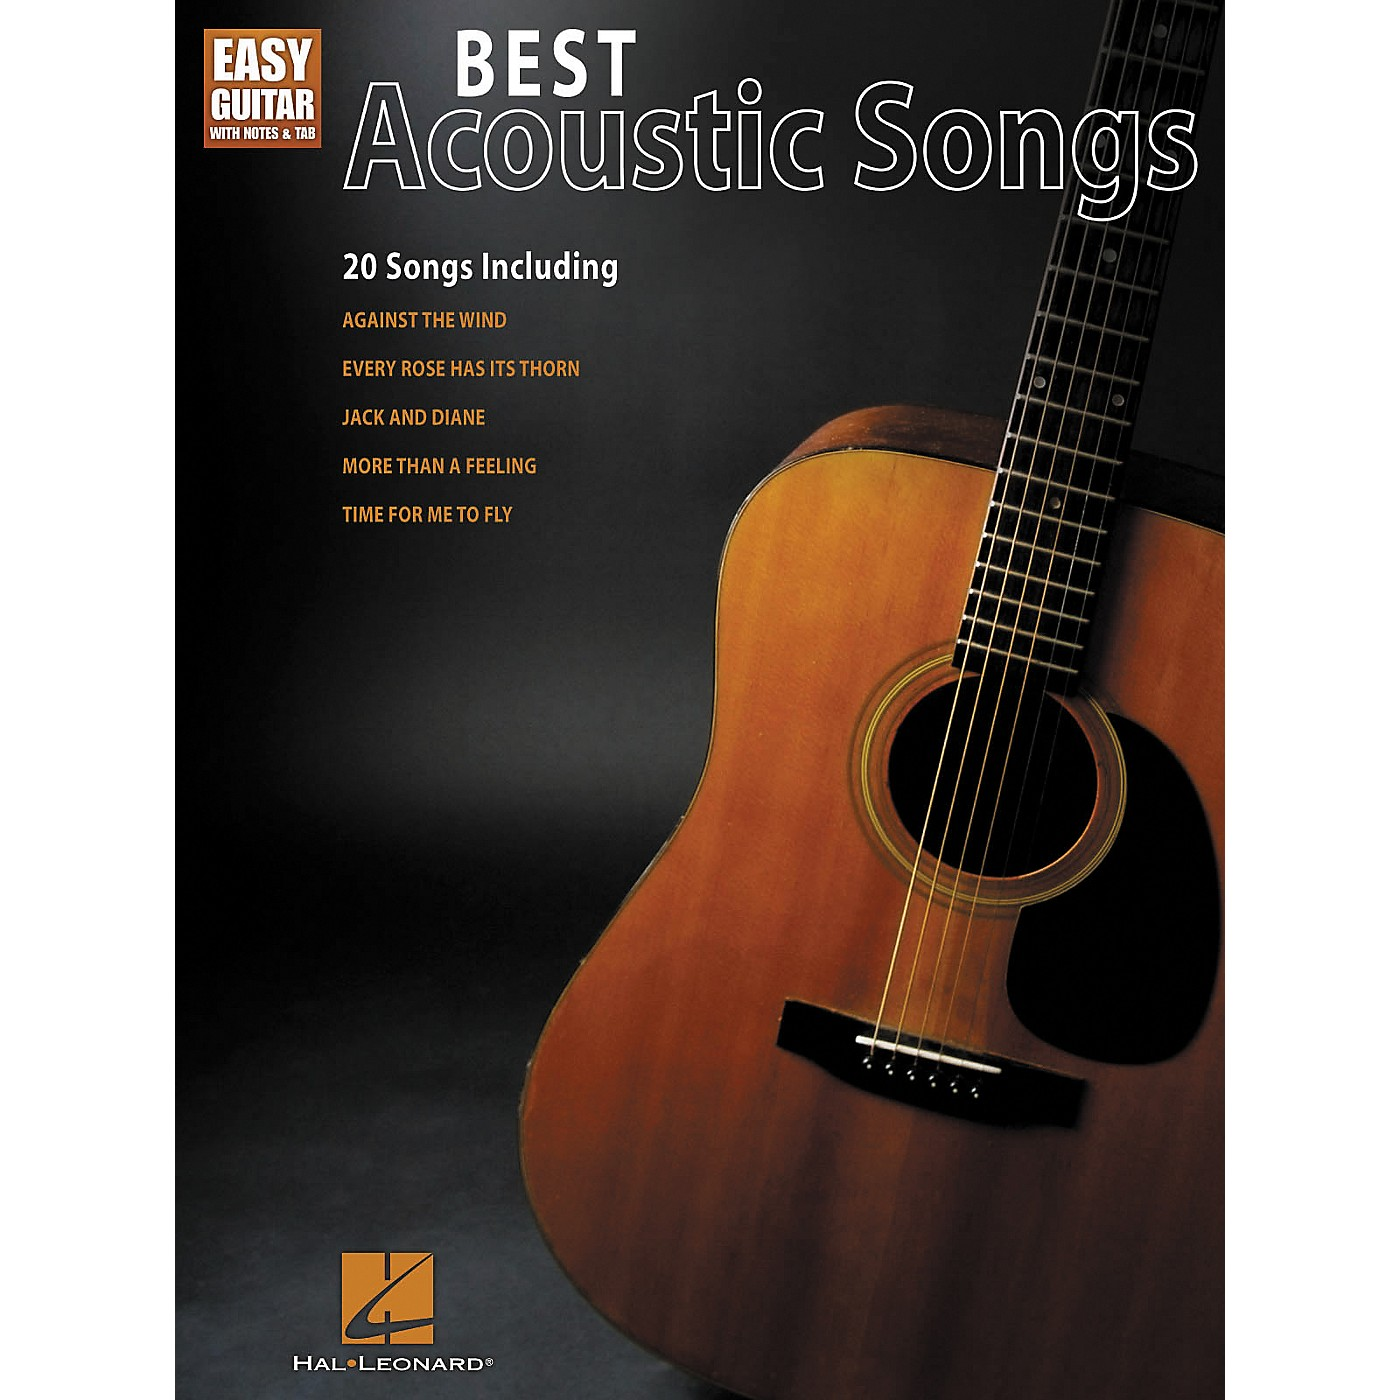 Hal Leonard Best Acoustic Songs - Easy Guitar With Notes & Tab Series thumbnail